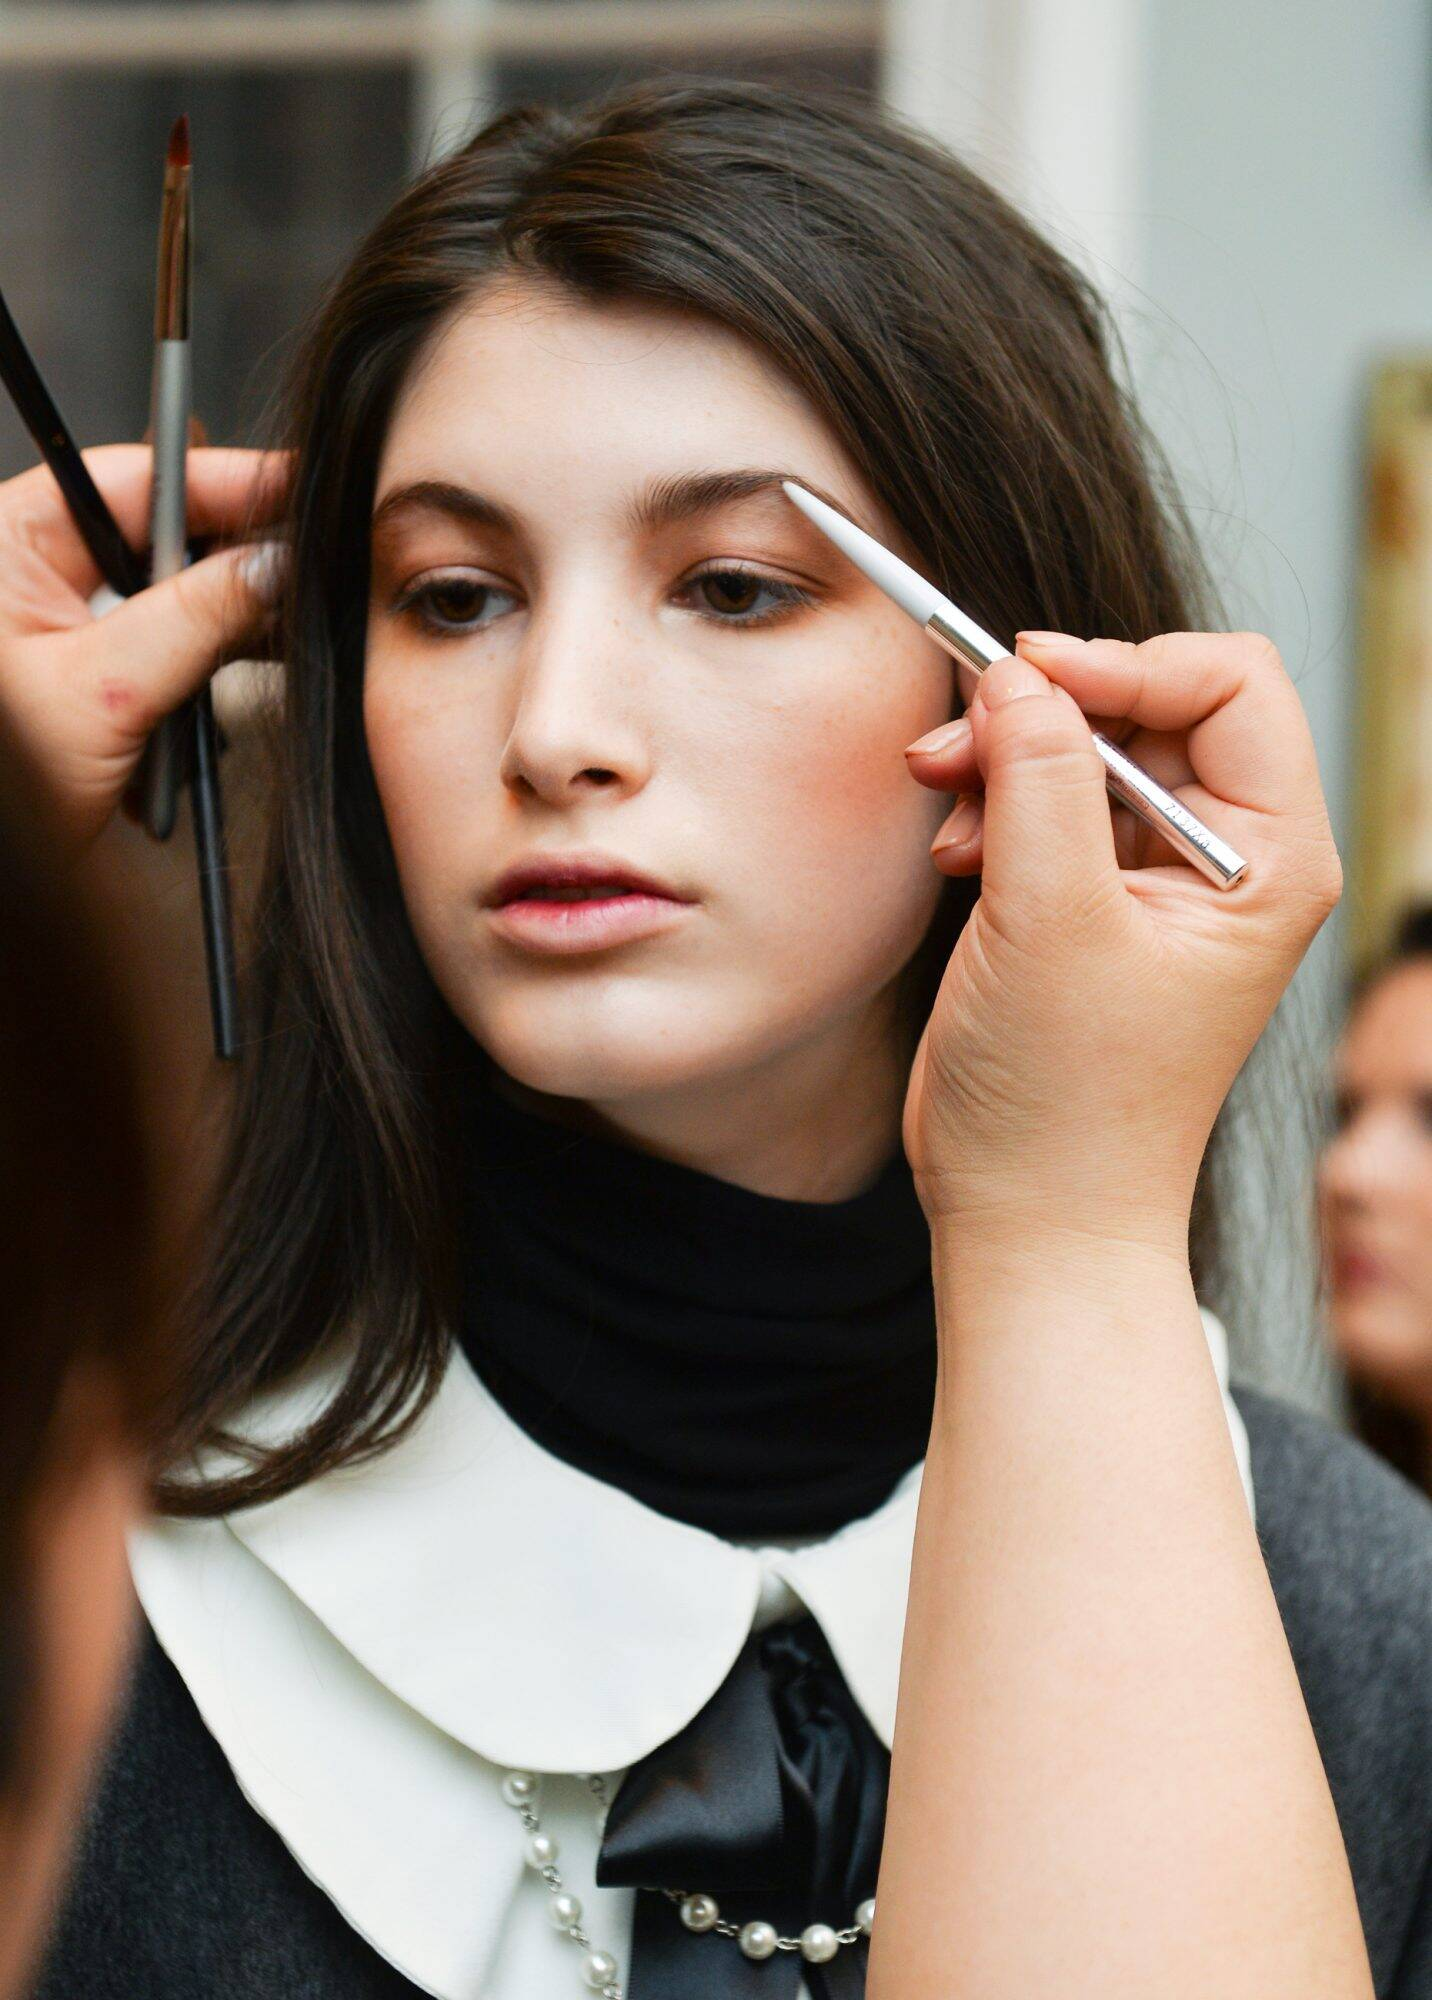 How To Arch Your Eyebrows Steps For Arched Brows Instyle